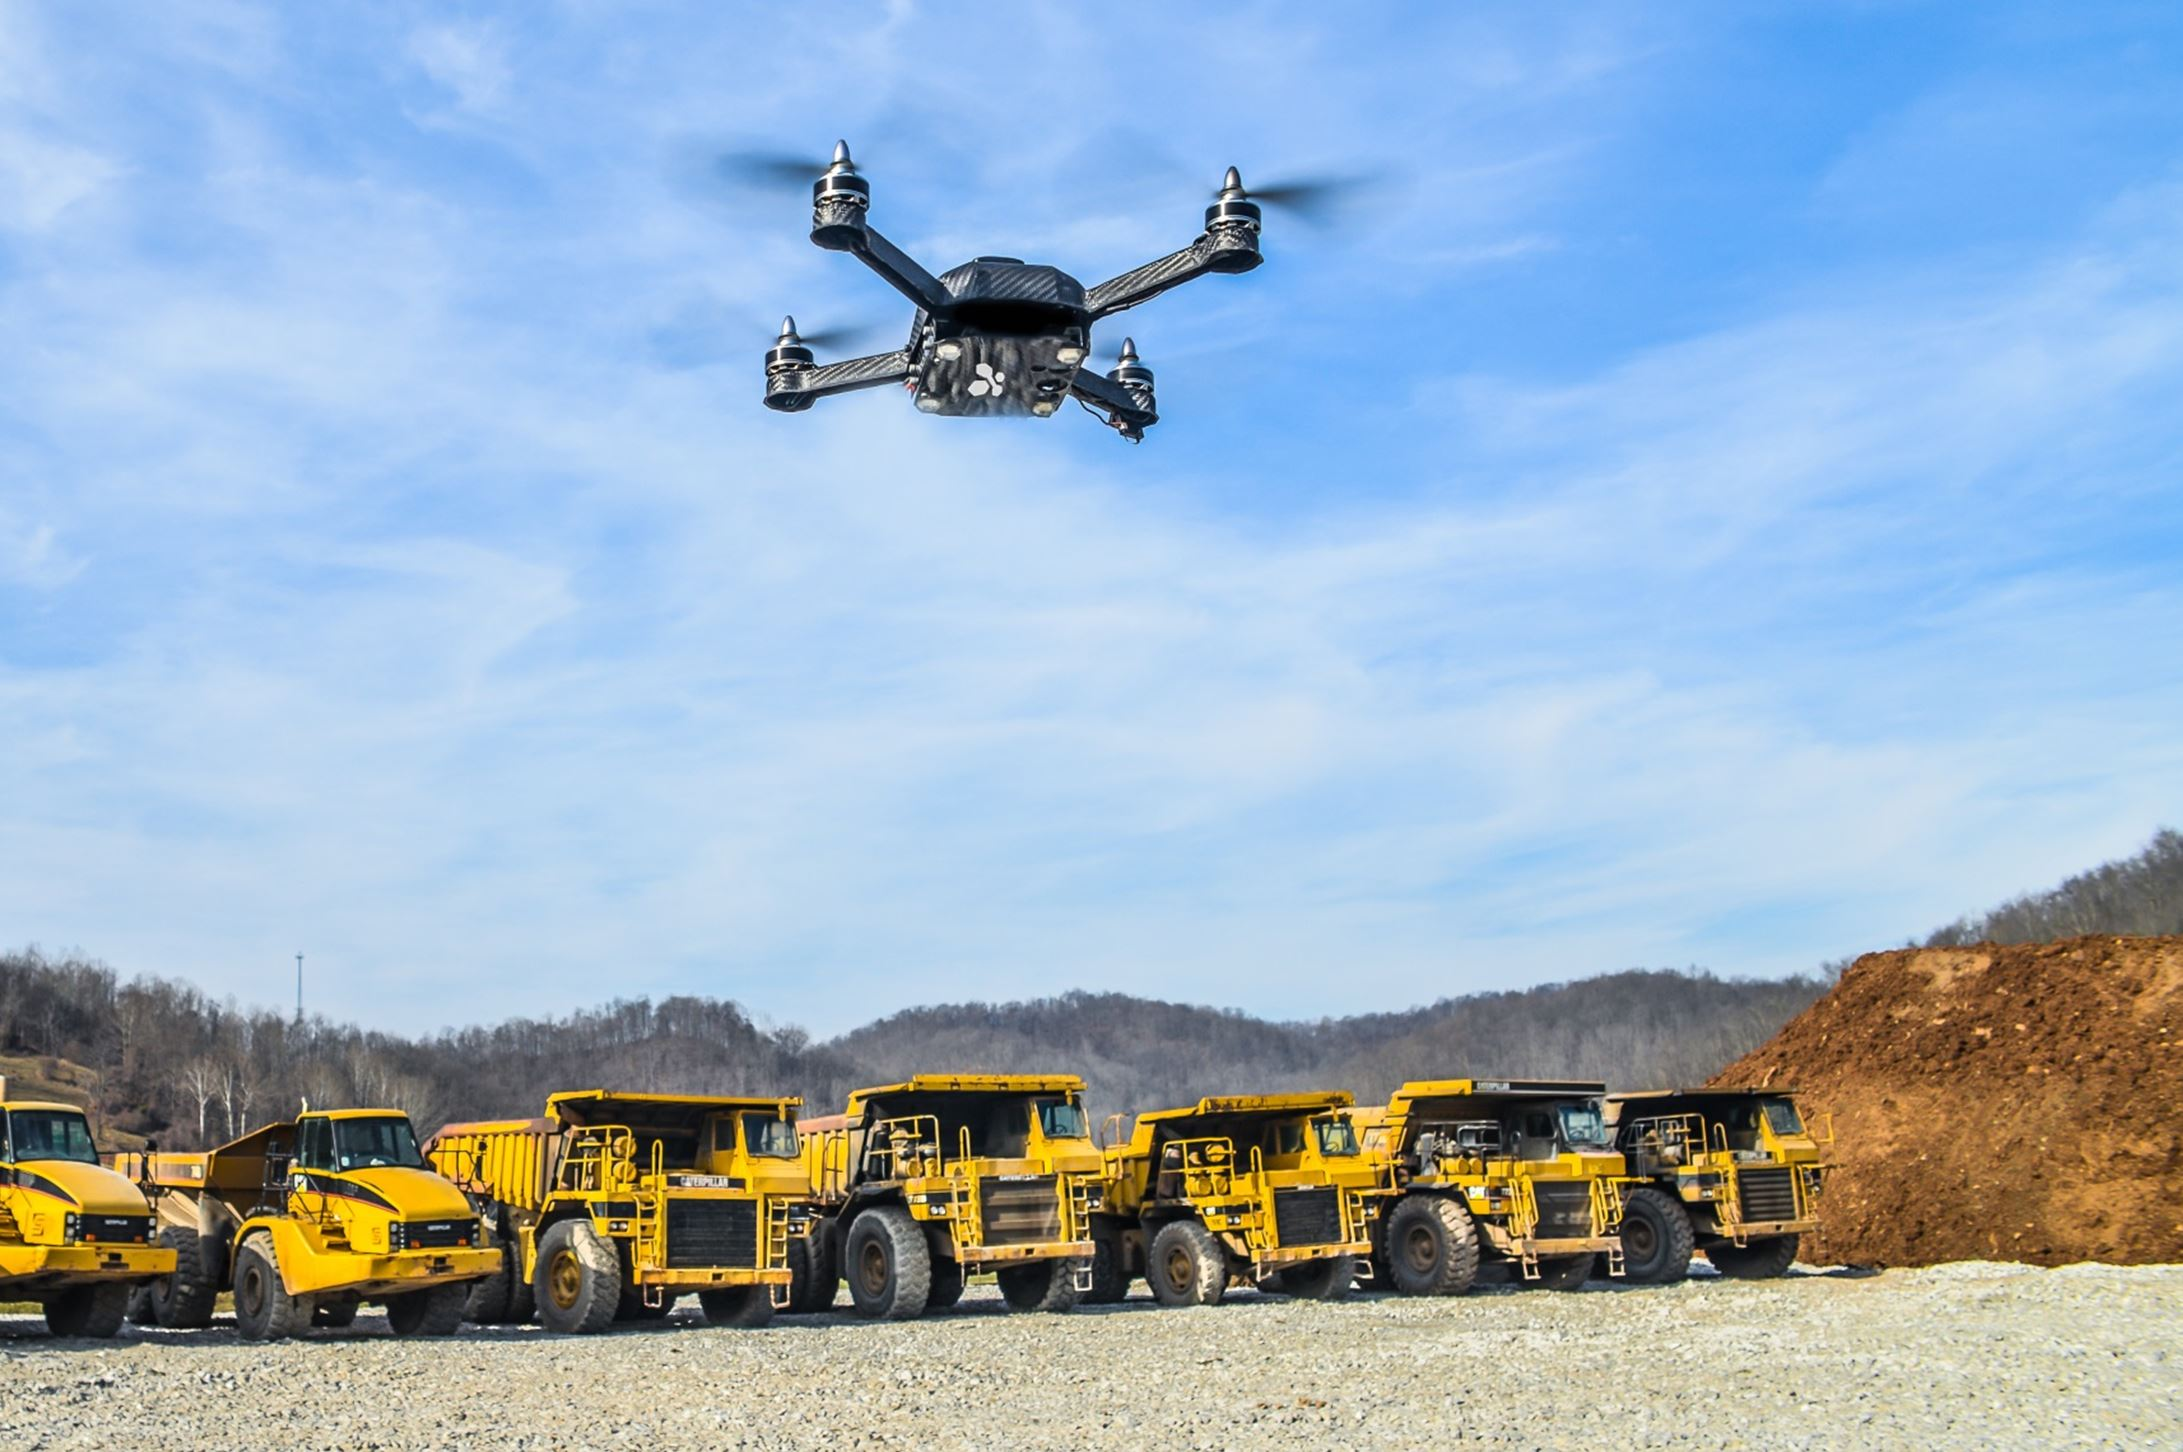 20150120Drones East Liberty-based Identified Technologies created an automated drone and docking system for gathering data at industrial sites, especially shale gas operations.